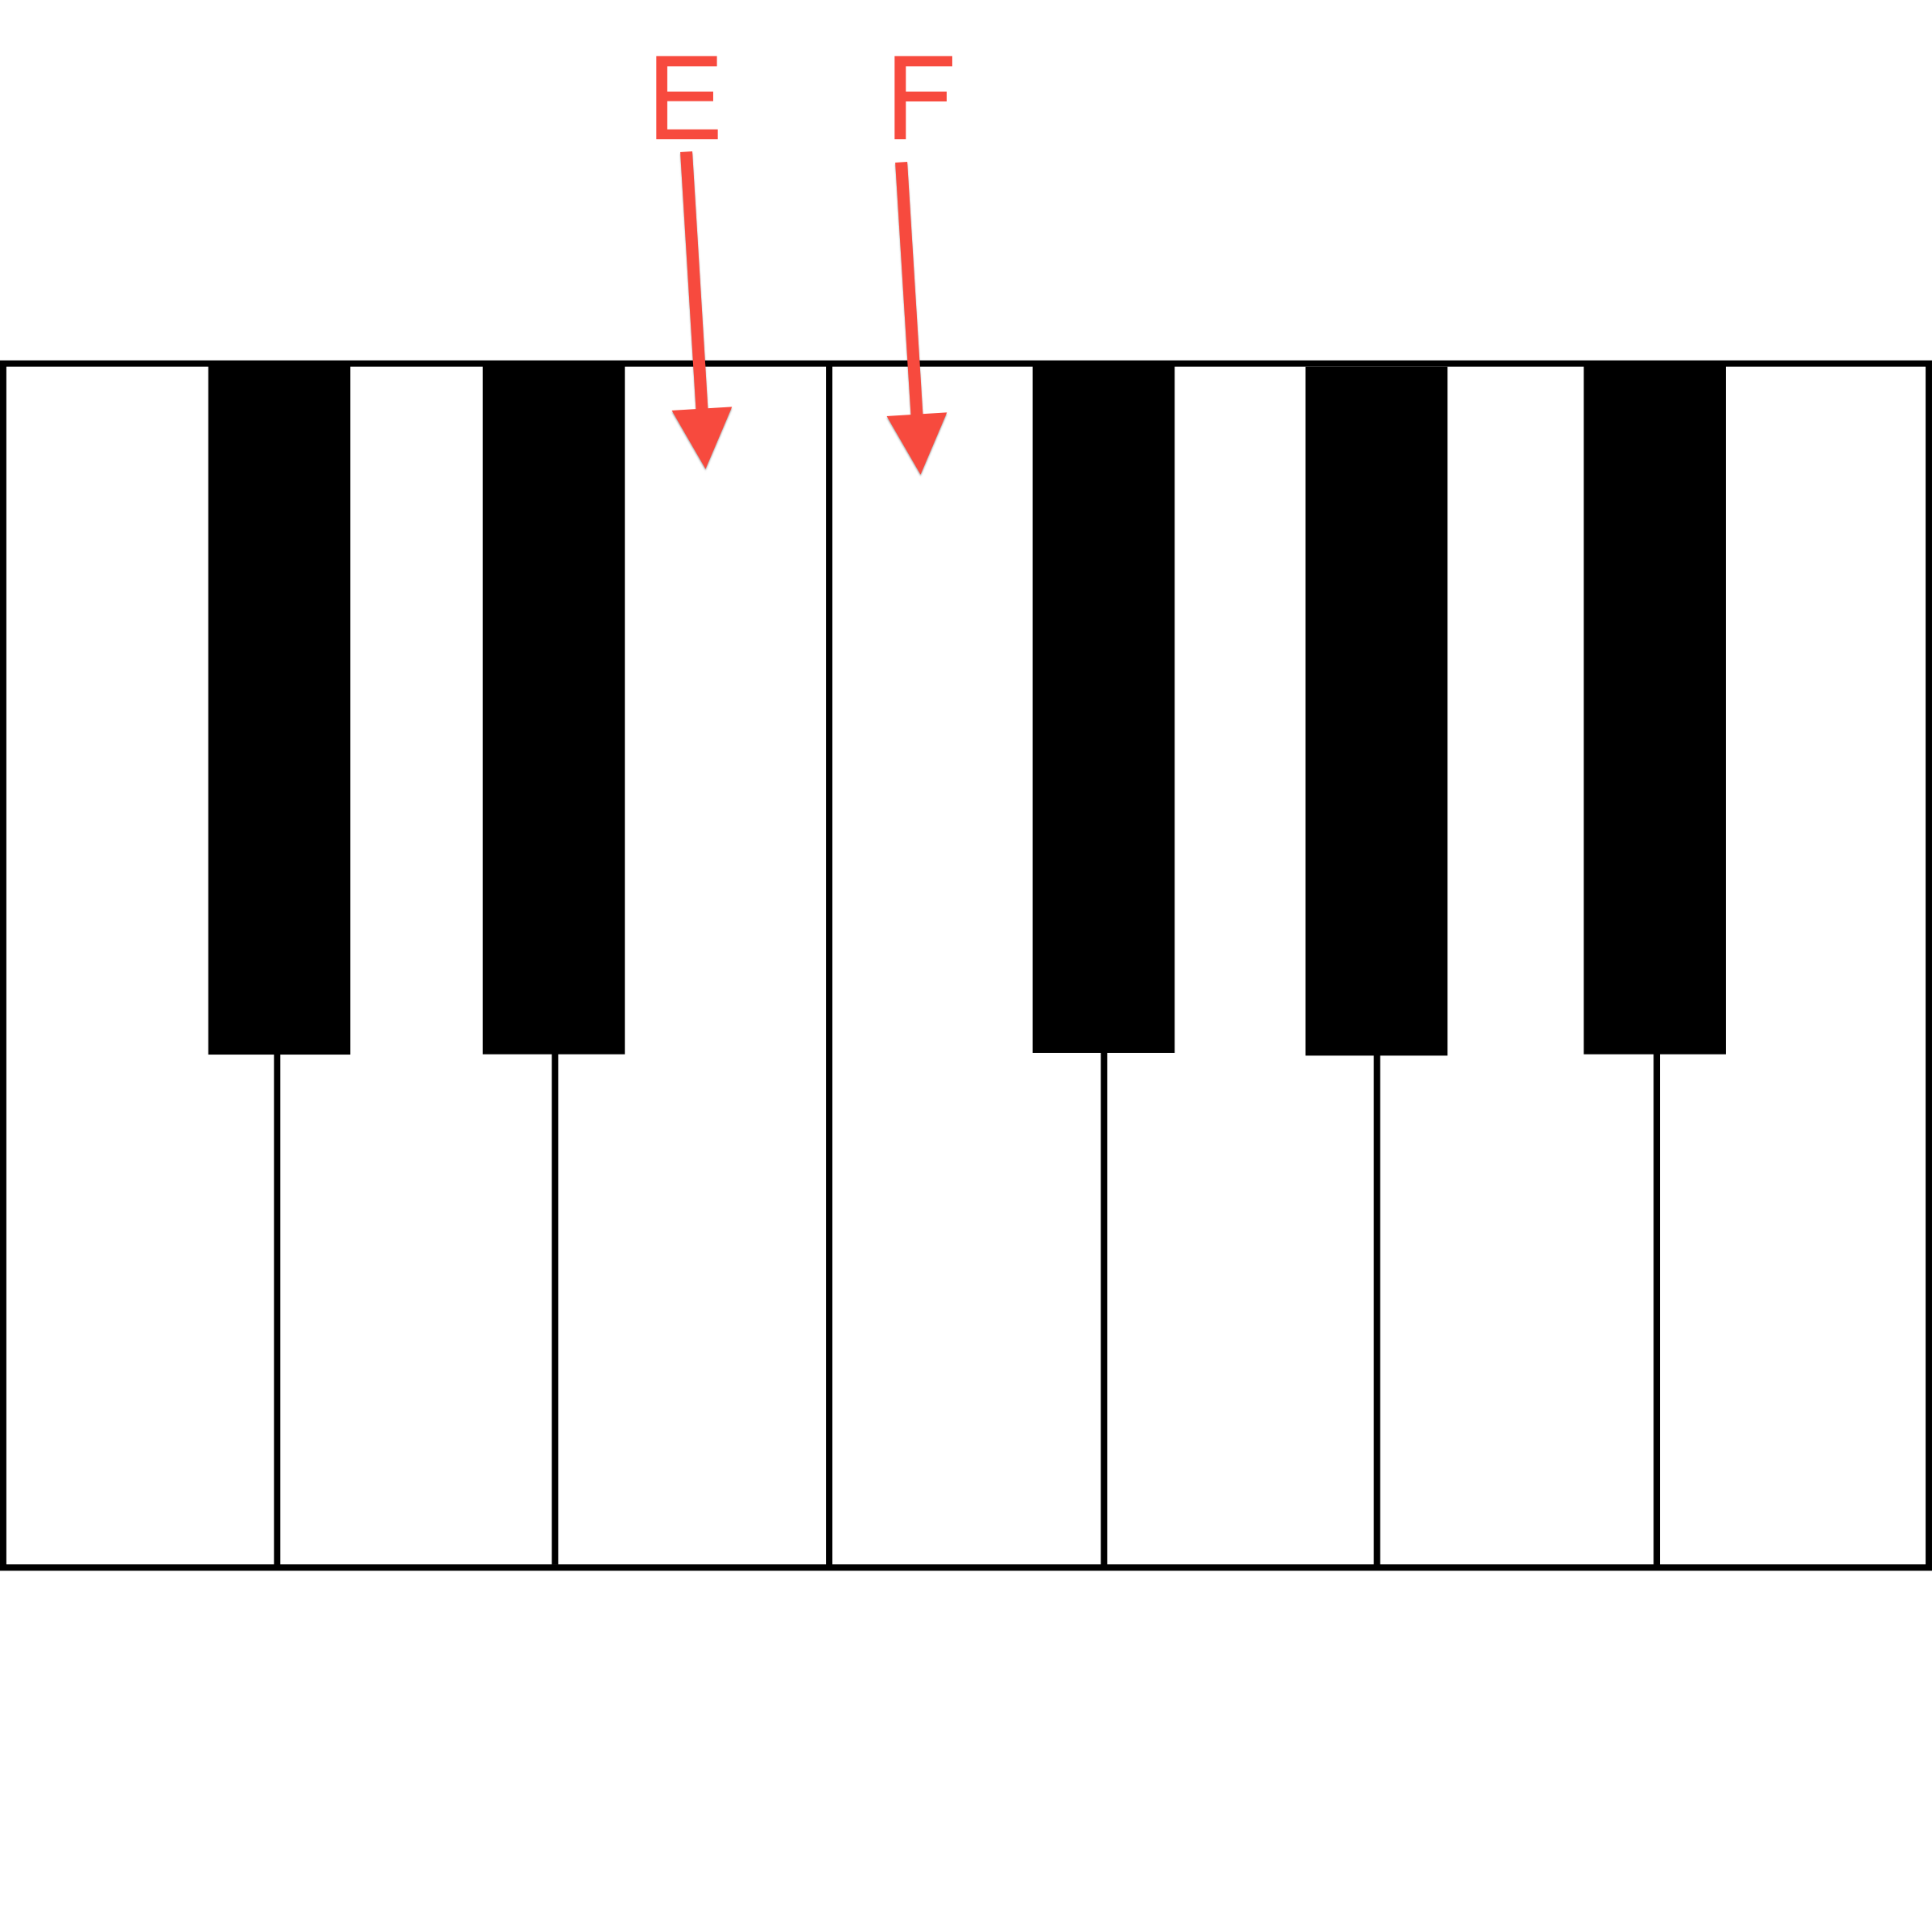 Piano Keyboard Showing Half Steps – E to F